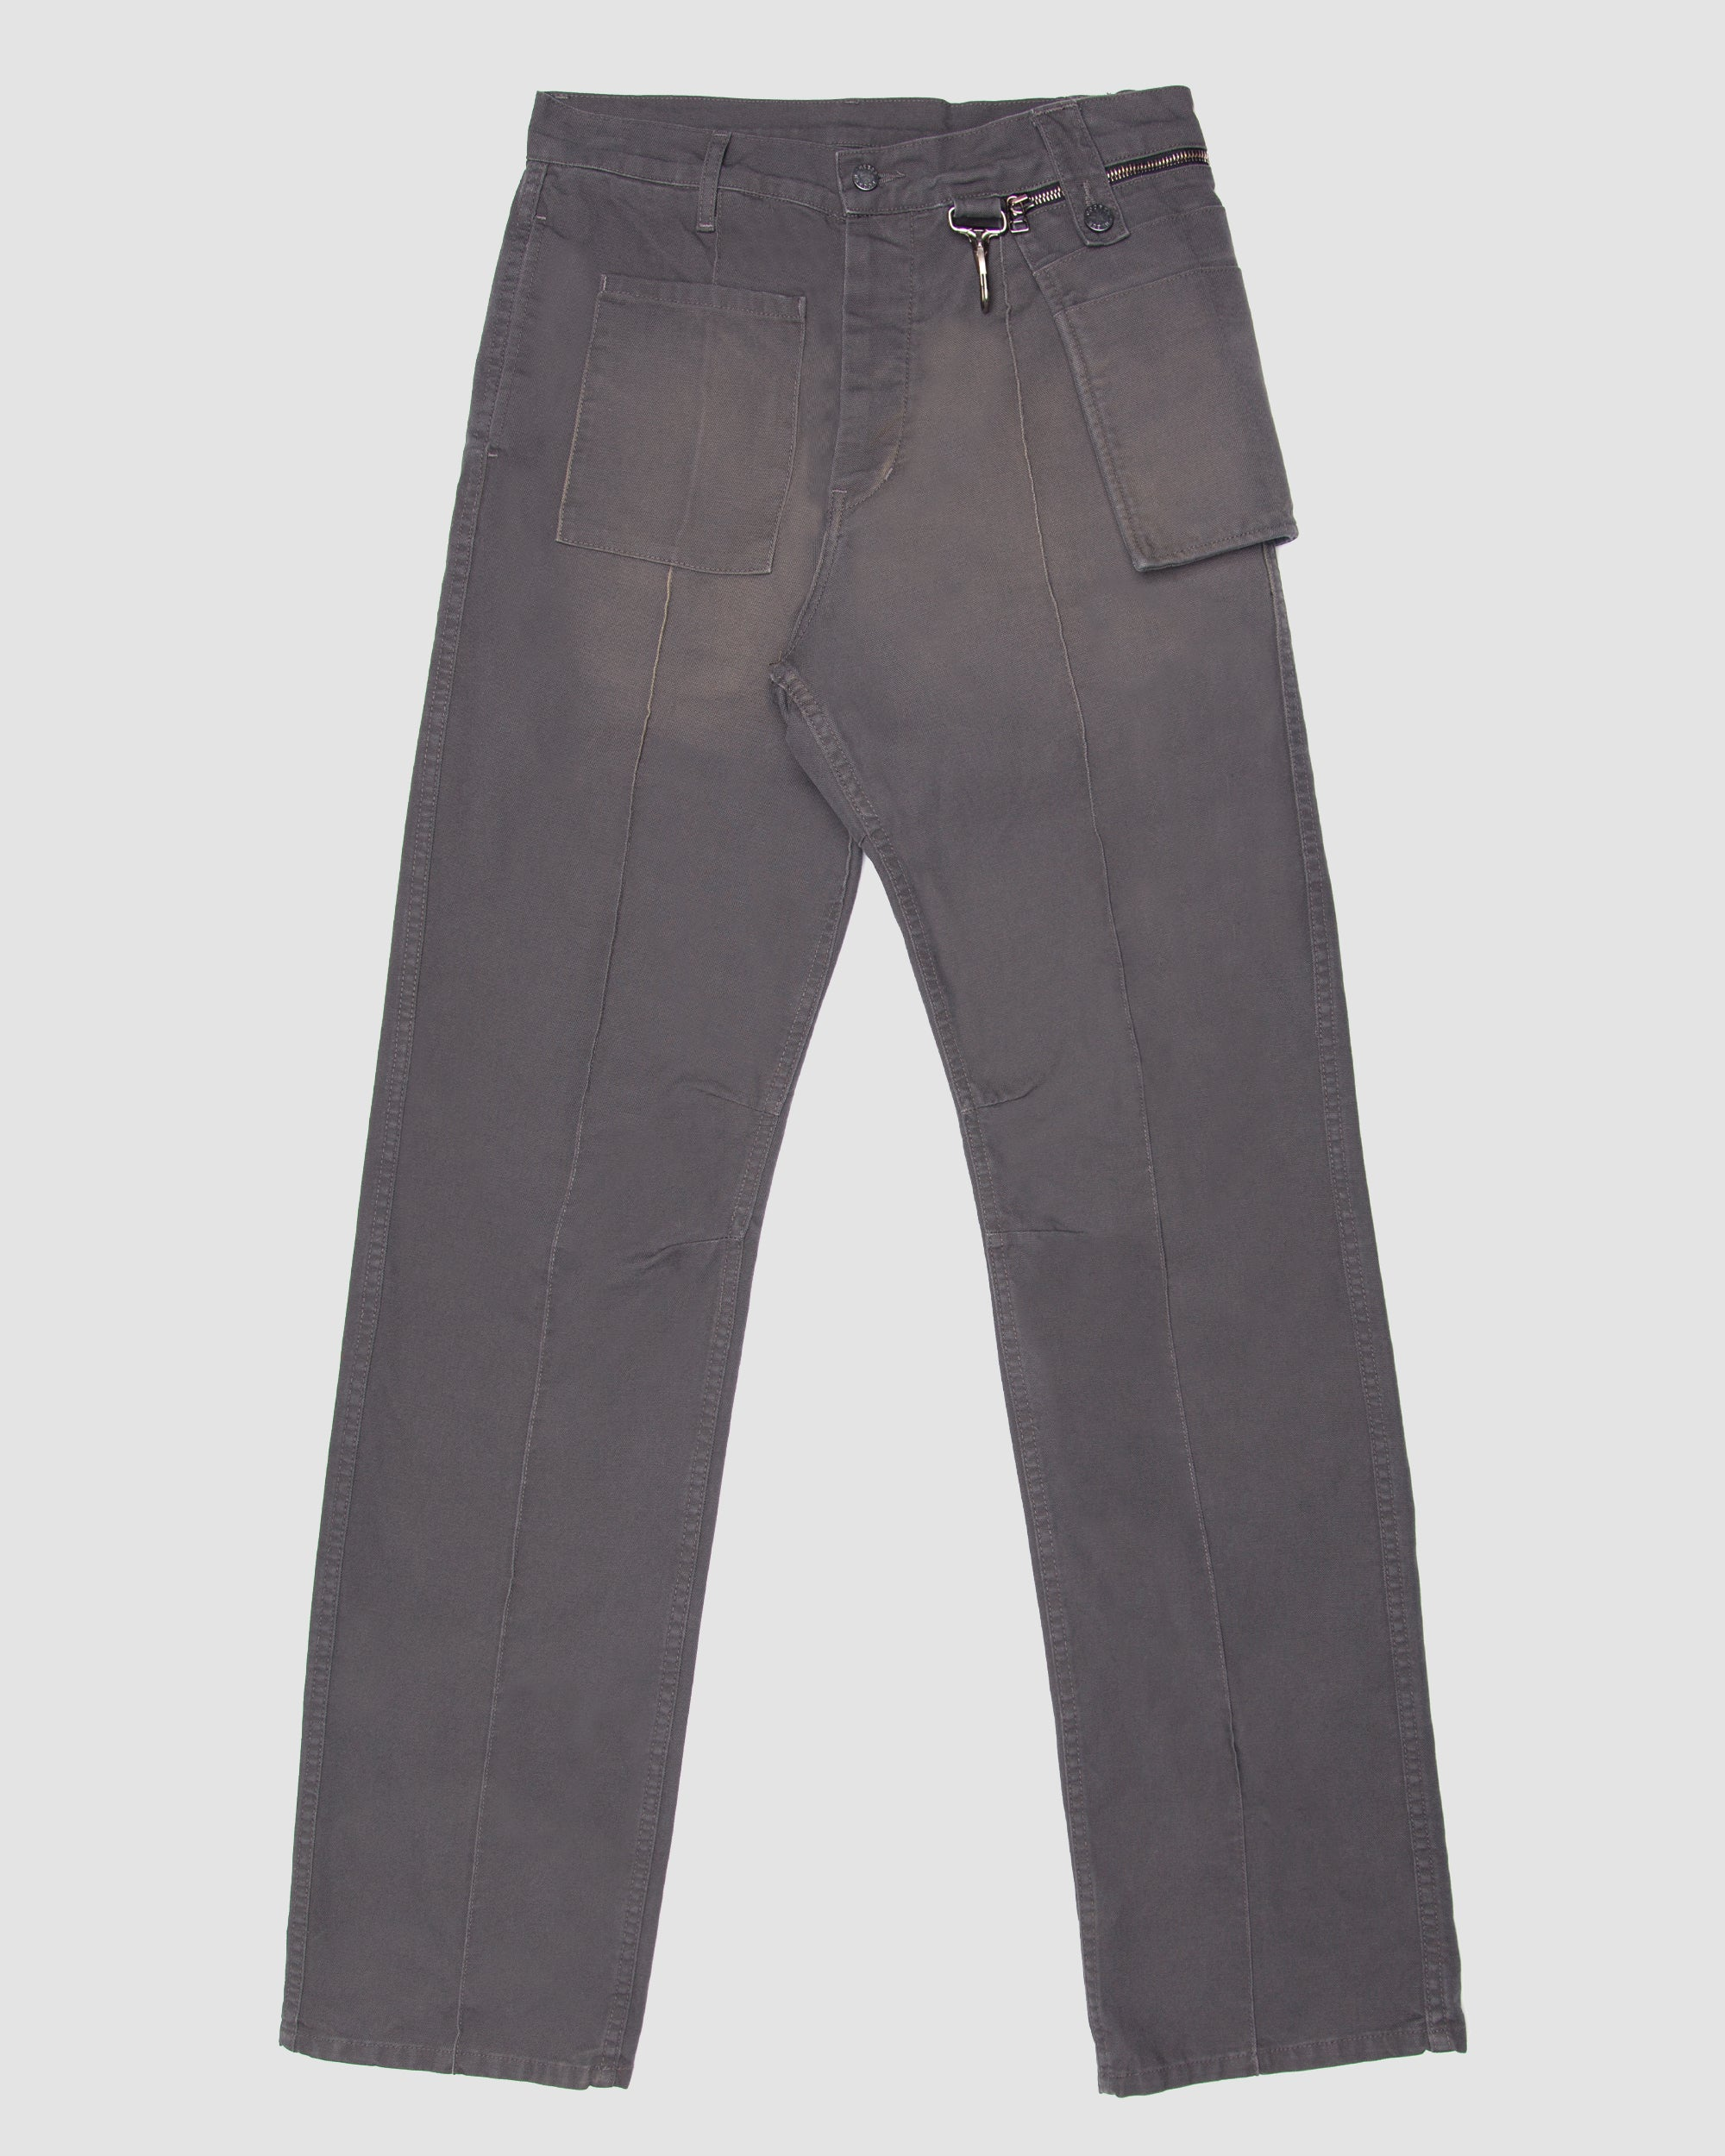 Canvas Wideleg Trouser with Zip Off Pocket in Grey